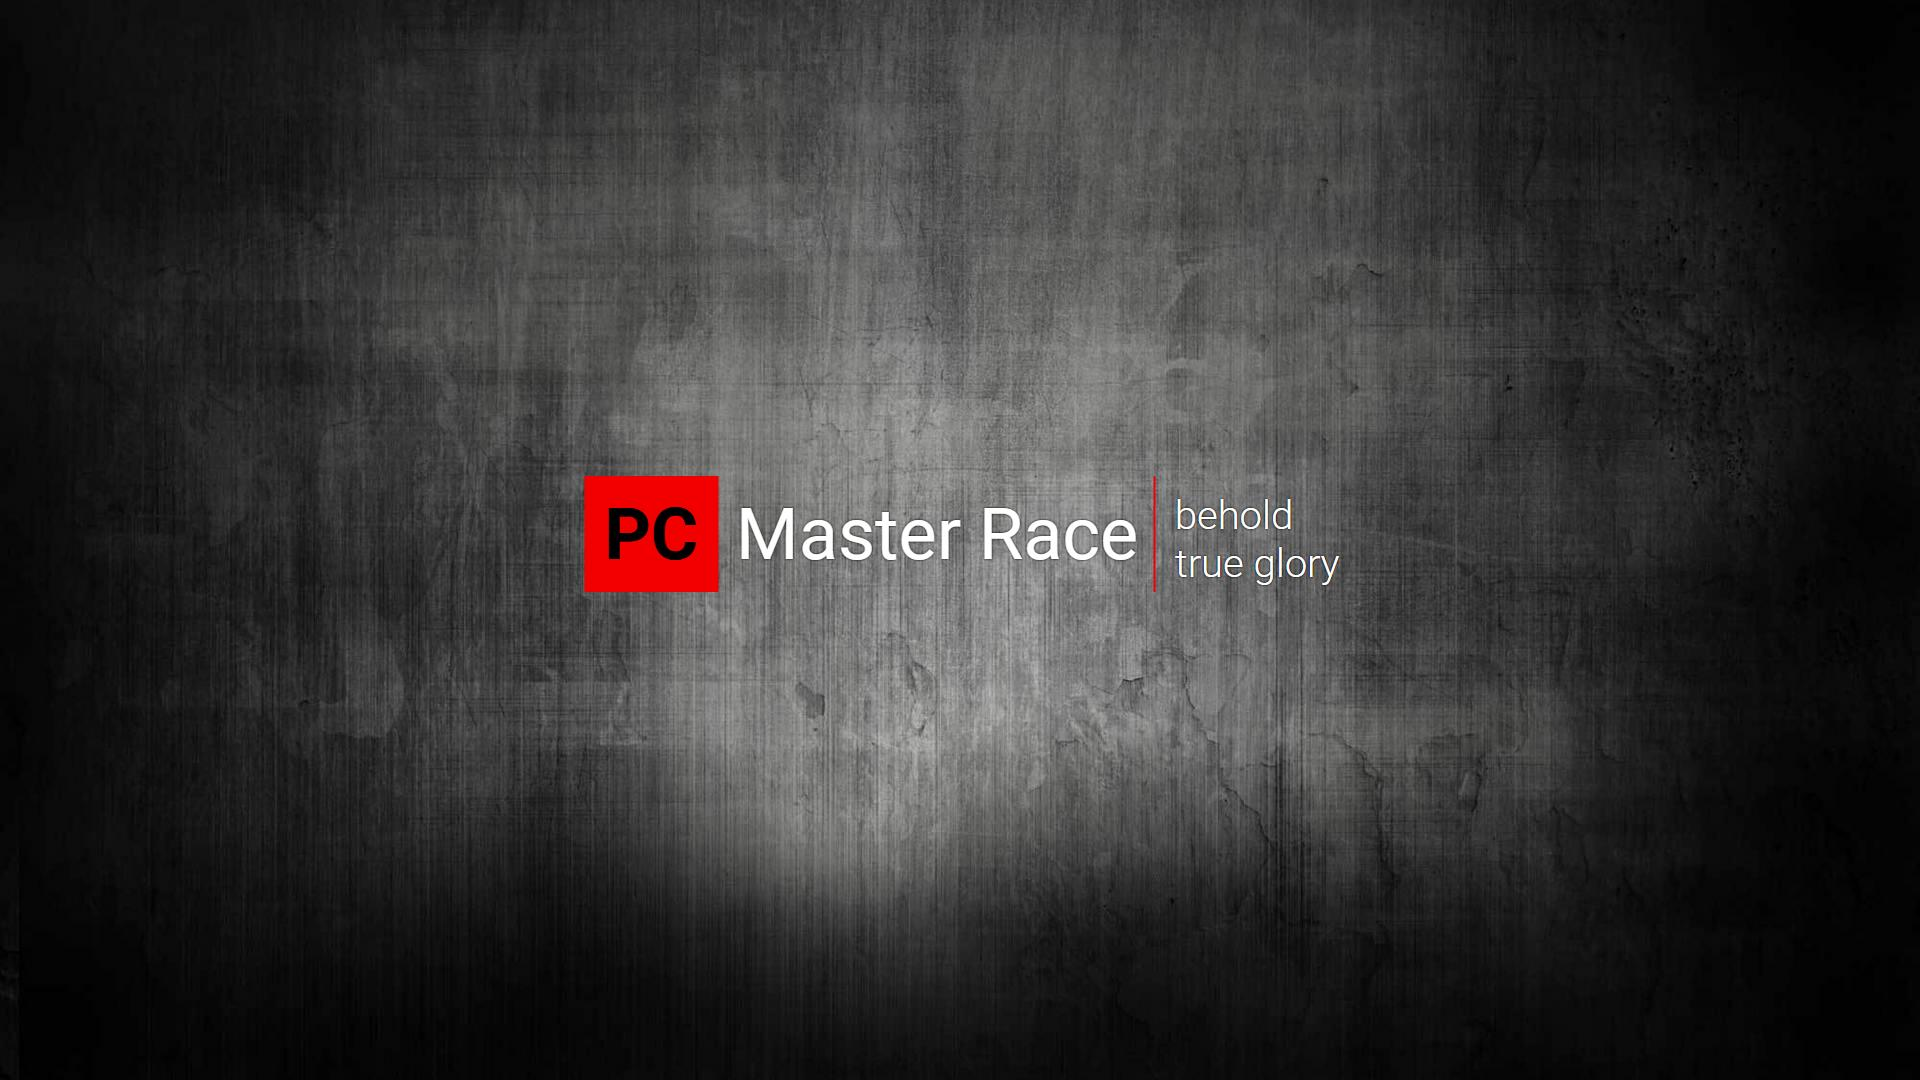 Download Pc Master Race Wallpaper Hd Backgrounds Download Itl Cat